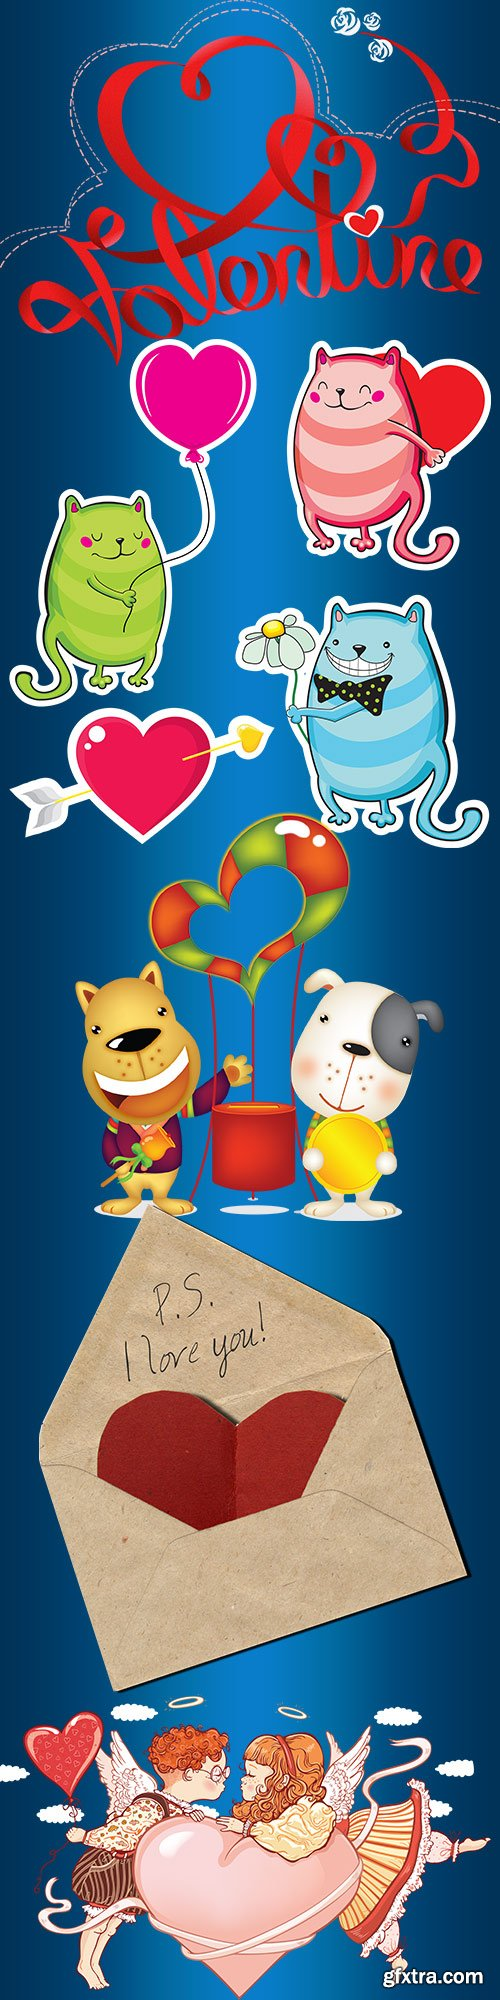 Valentine's day clipart on a transparent background 2